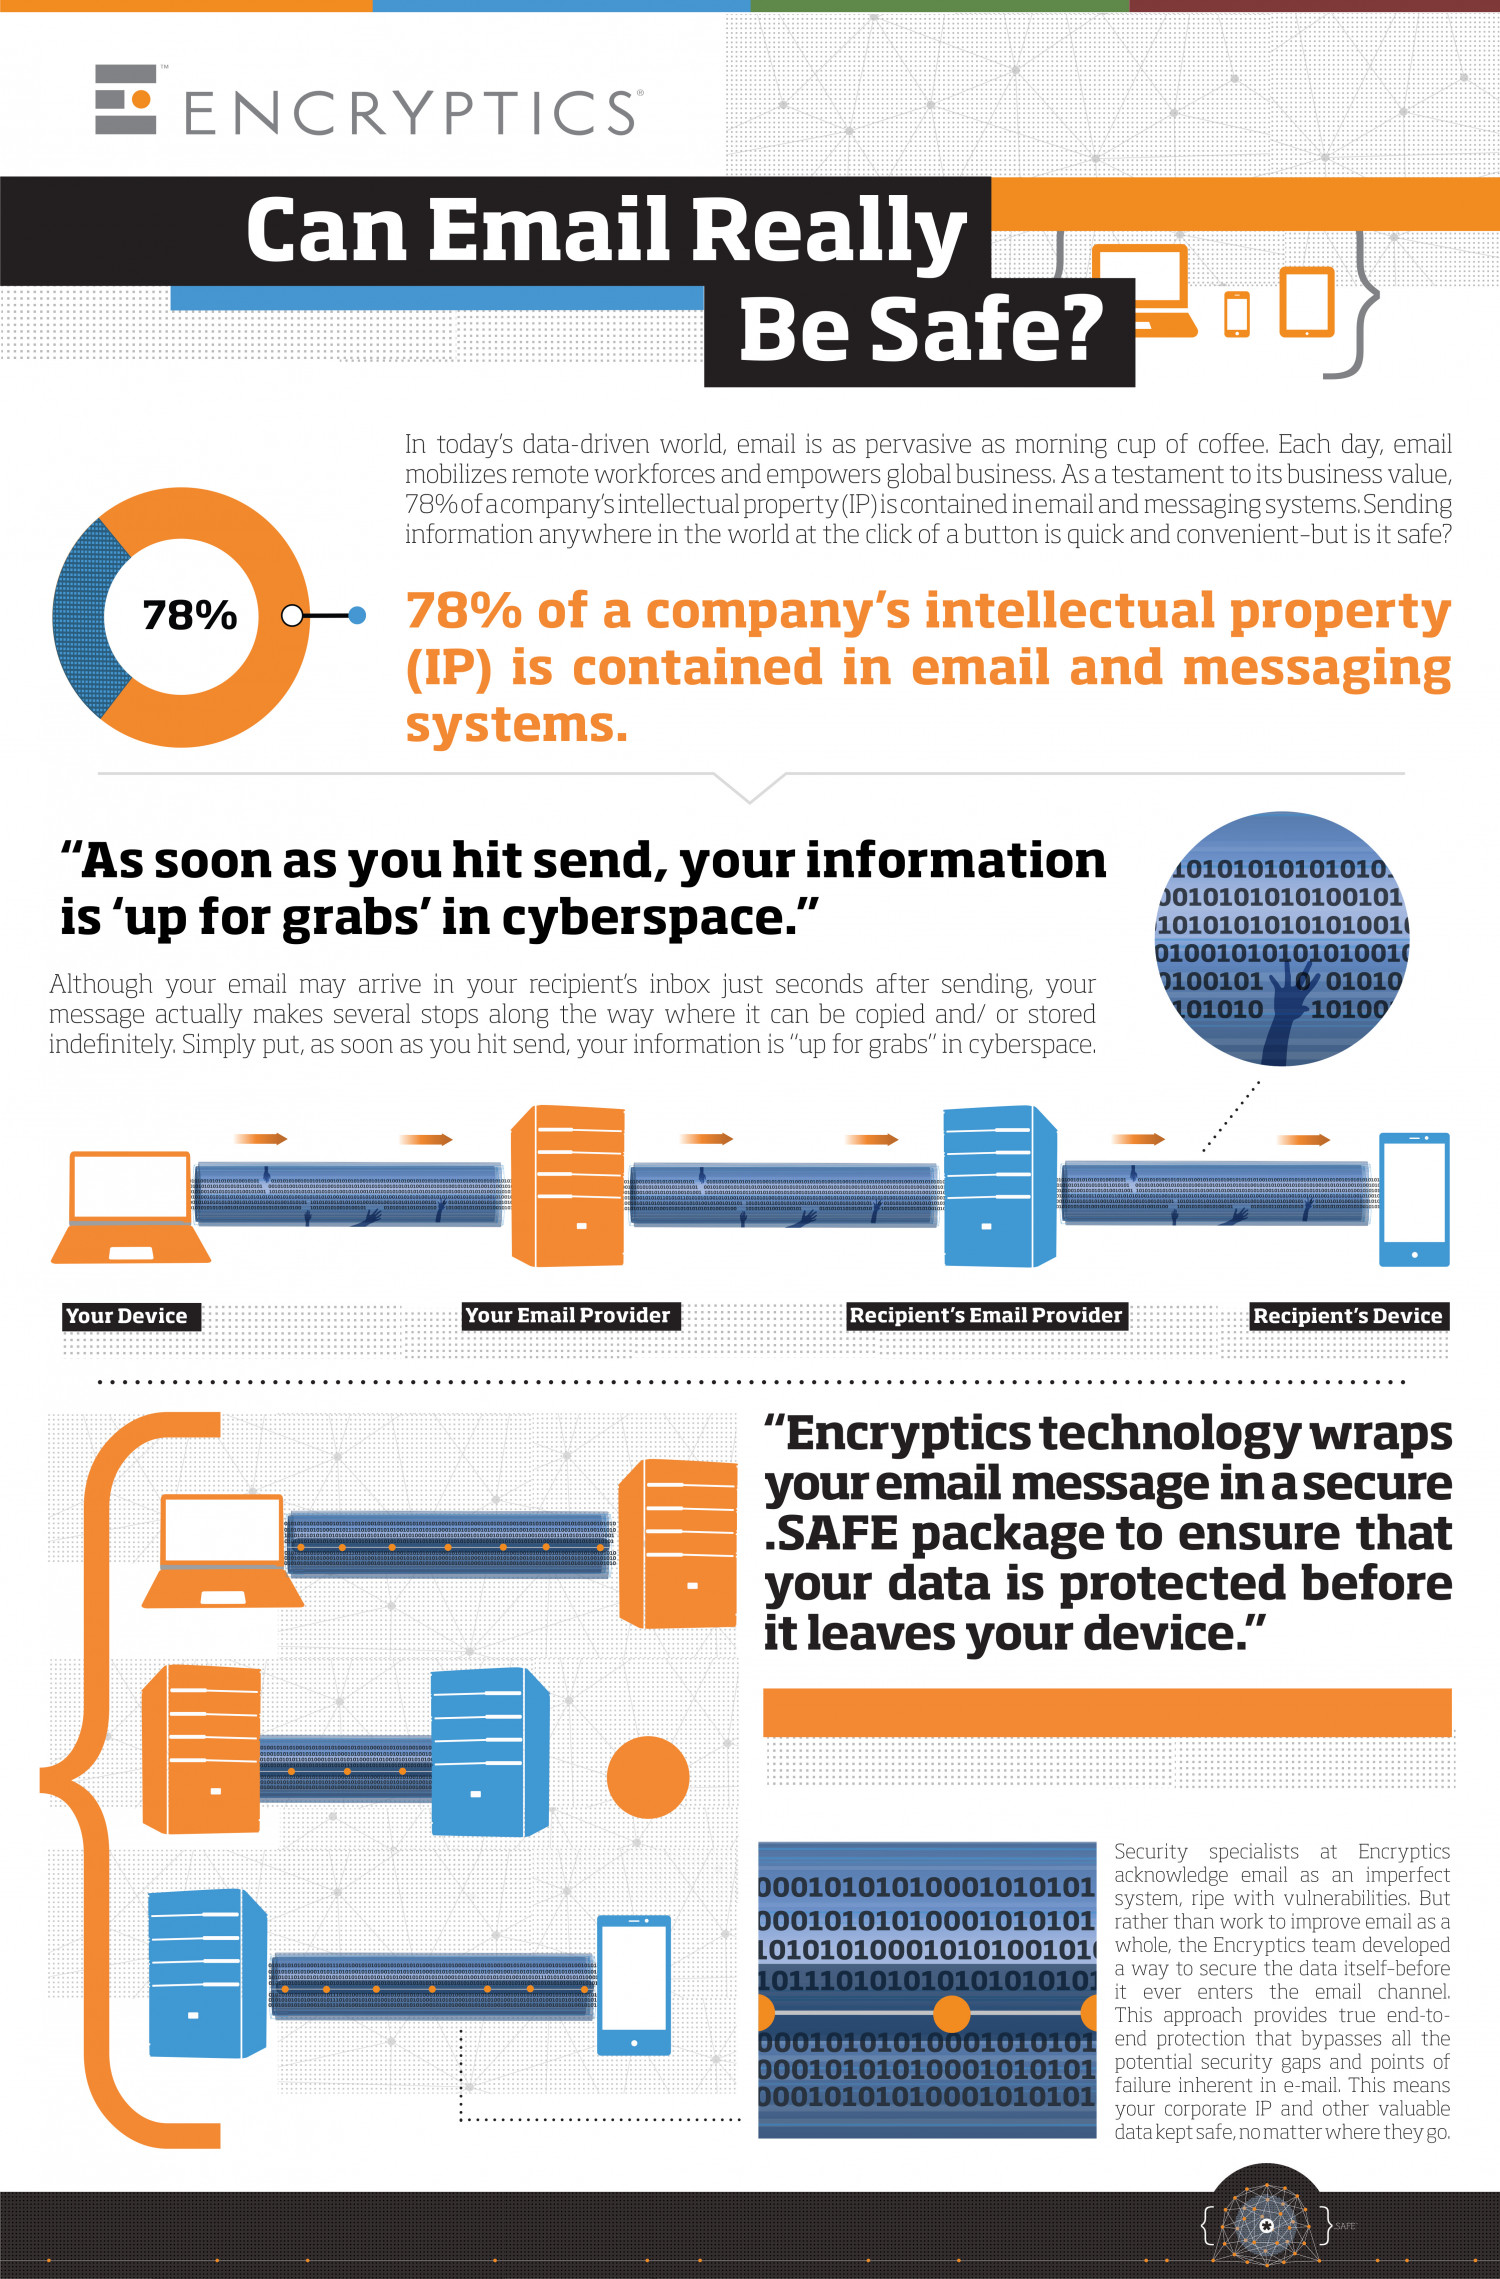 Can Email Really Be Safe? Infographic